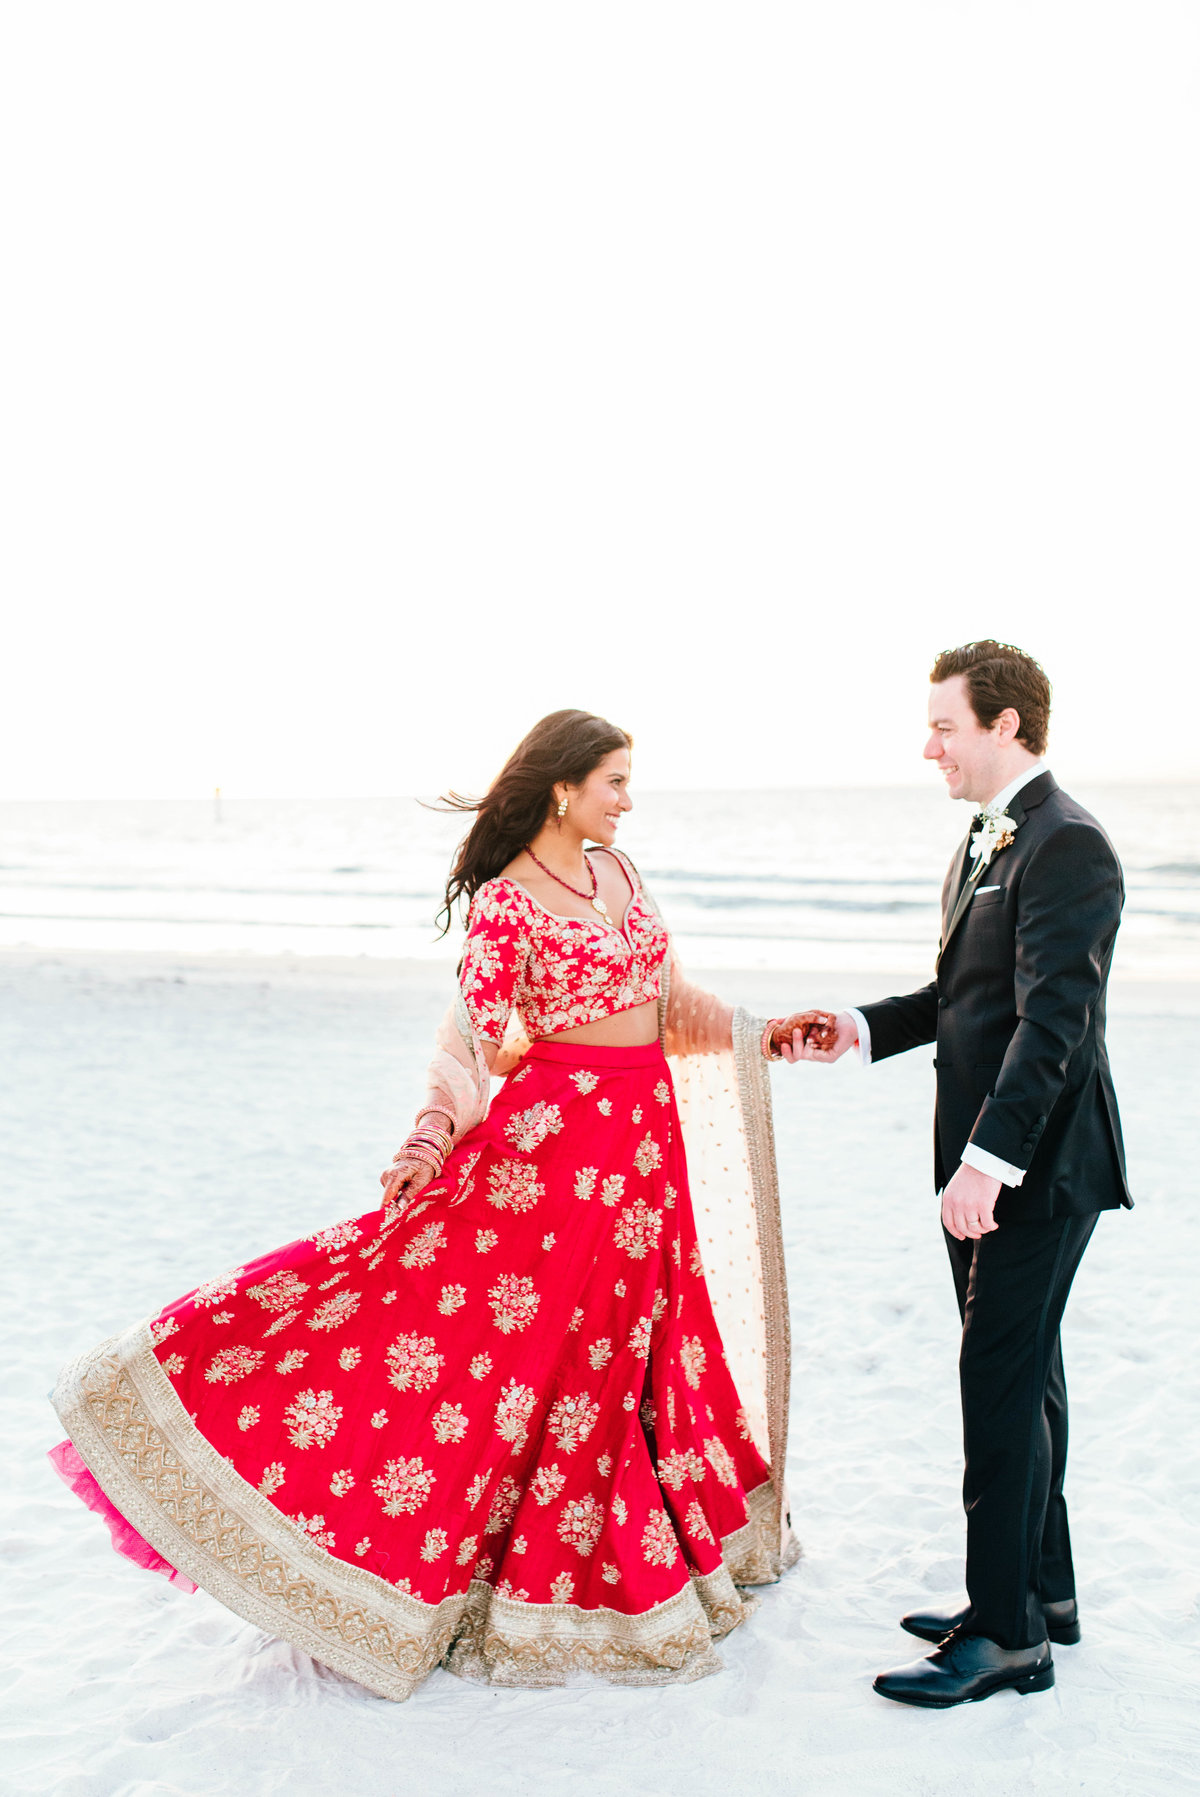 Ledia Tashi Photography Wedding Engagement Tampa Florida Destination International Photographer17